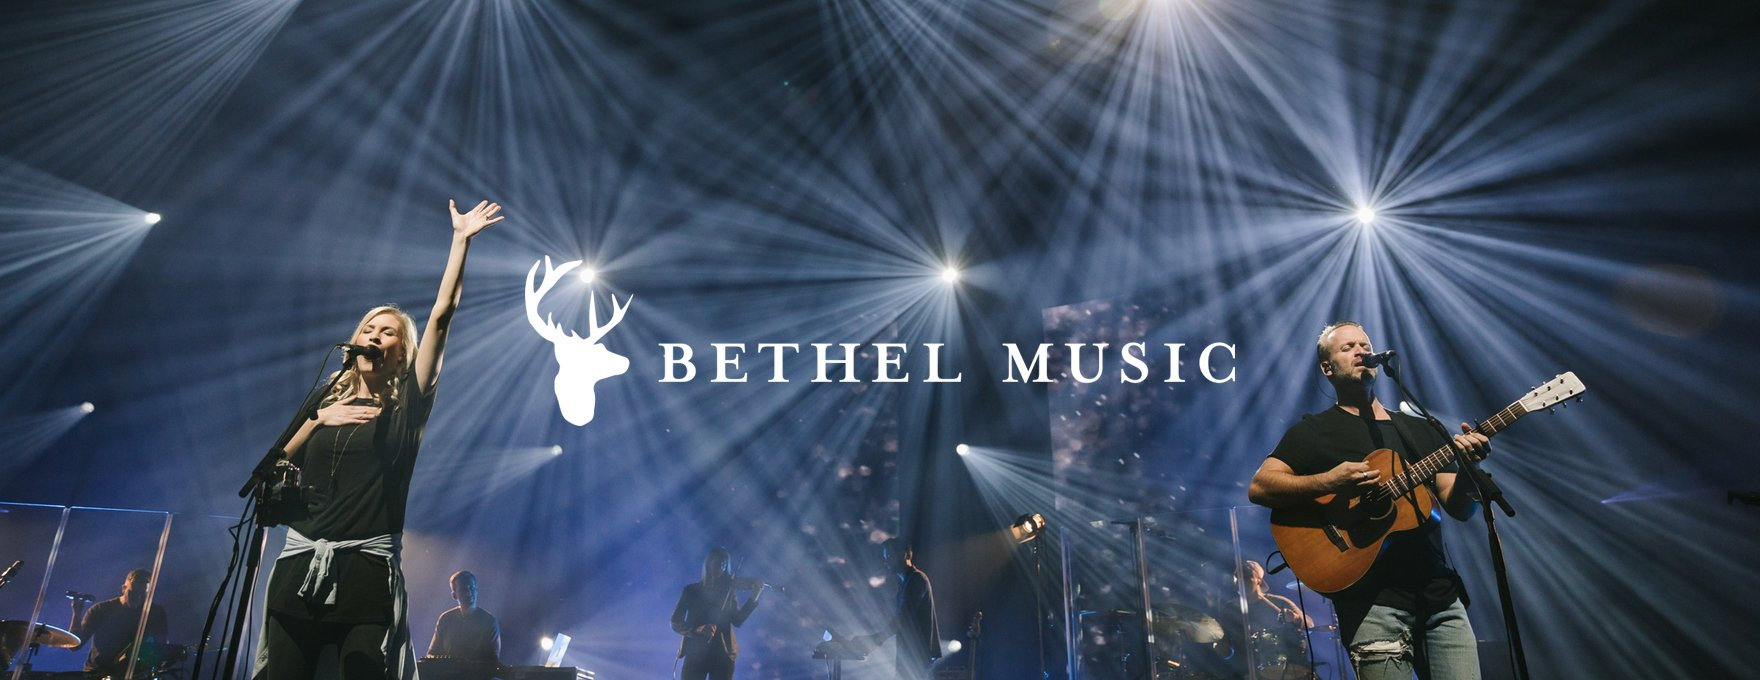 Bethel Music worship and merchandise collection